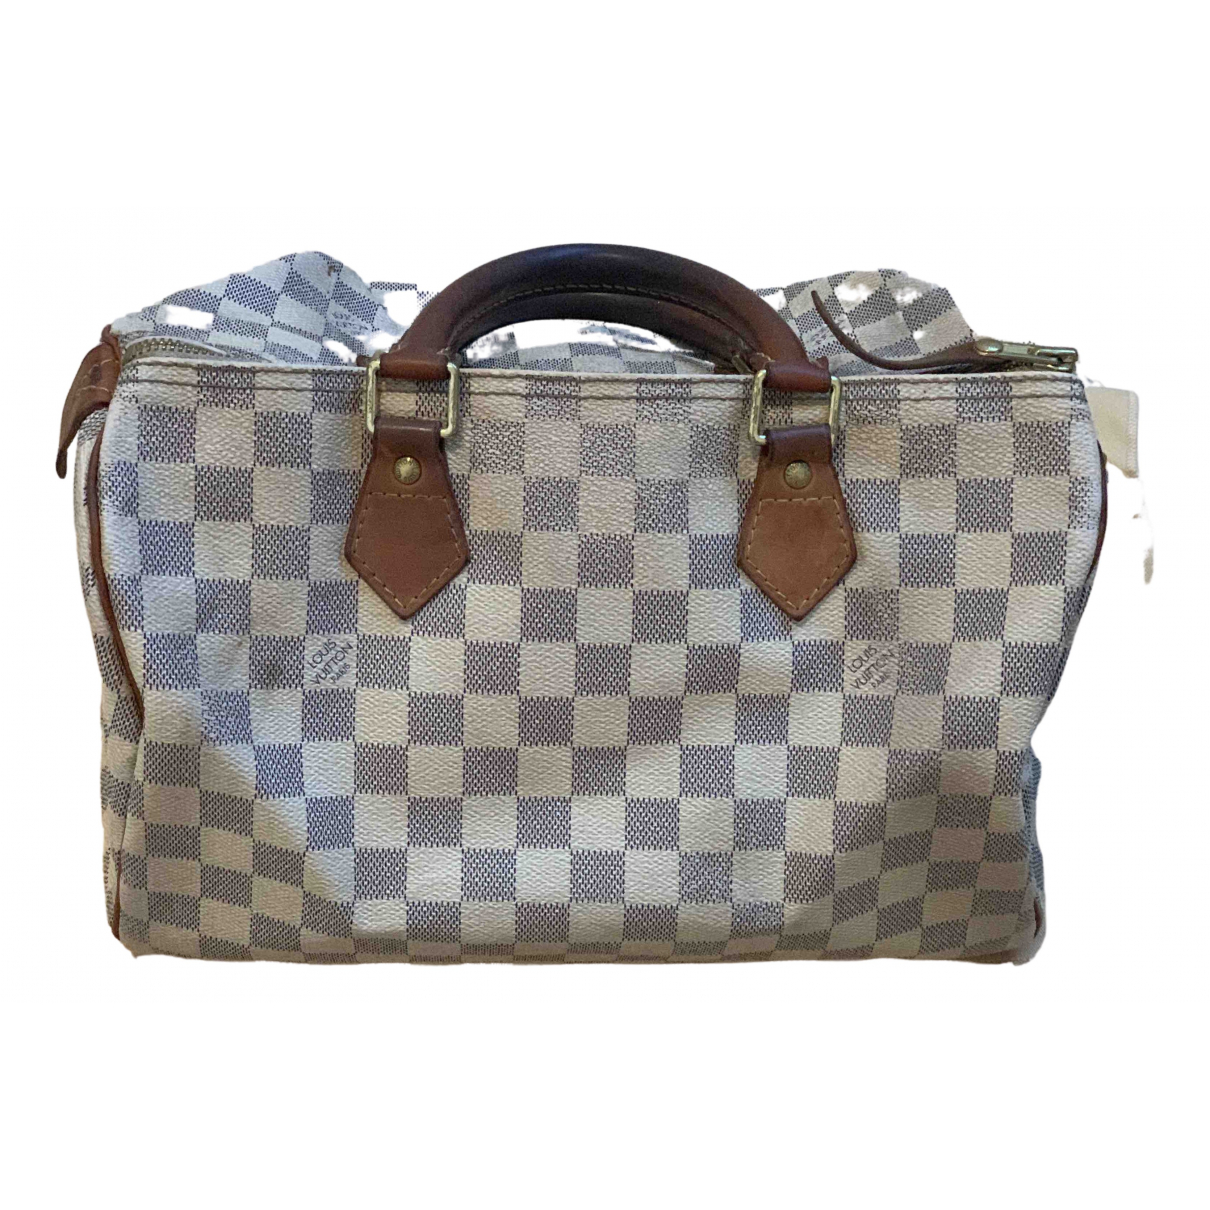 Louis Vuitton Speedy White Cloth handbag for Women \N